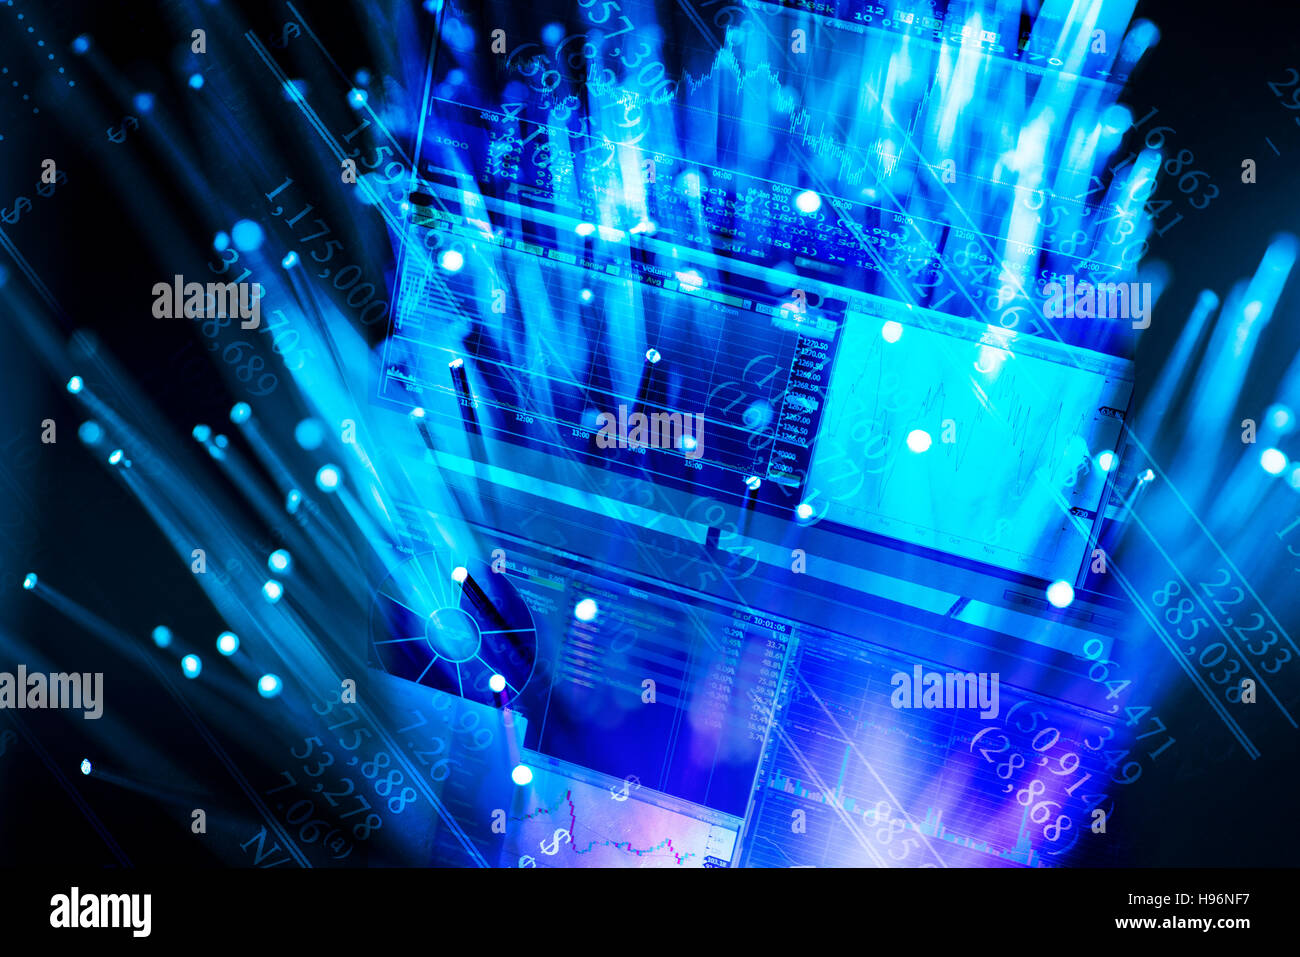 Hologram of blue screens - Stock Image